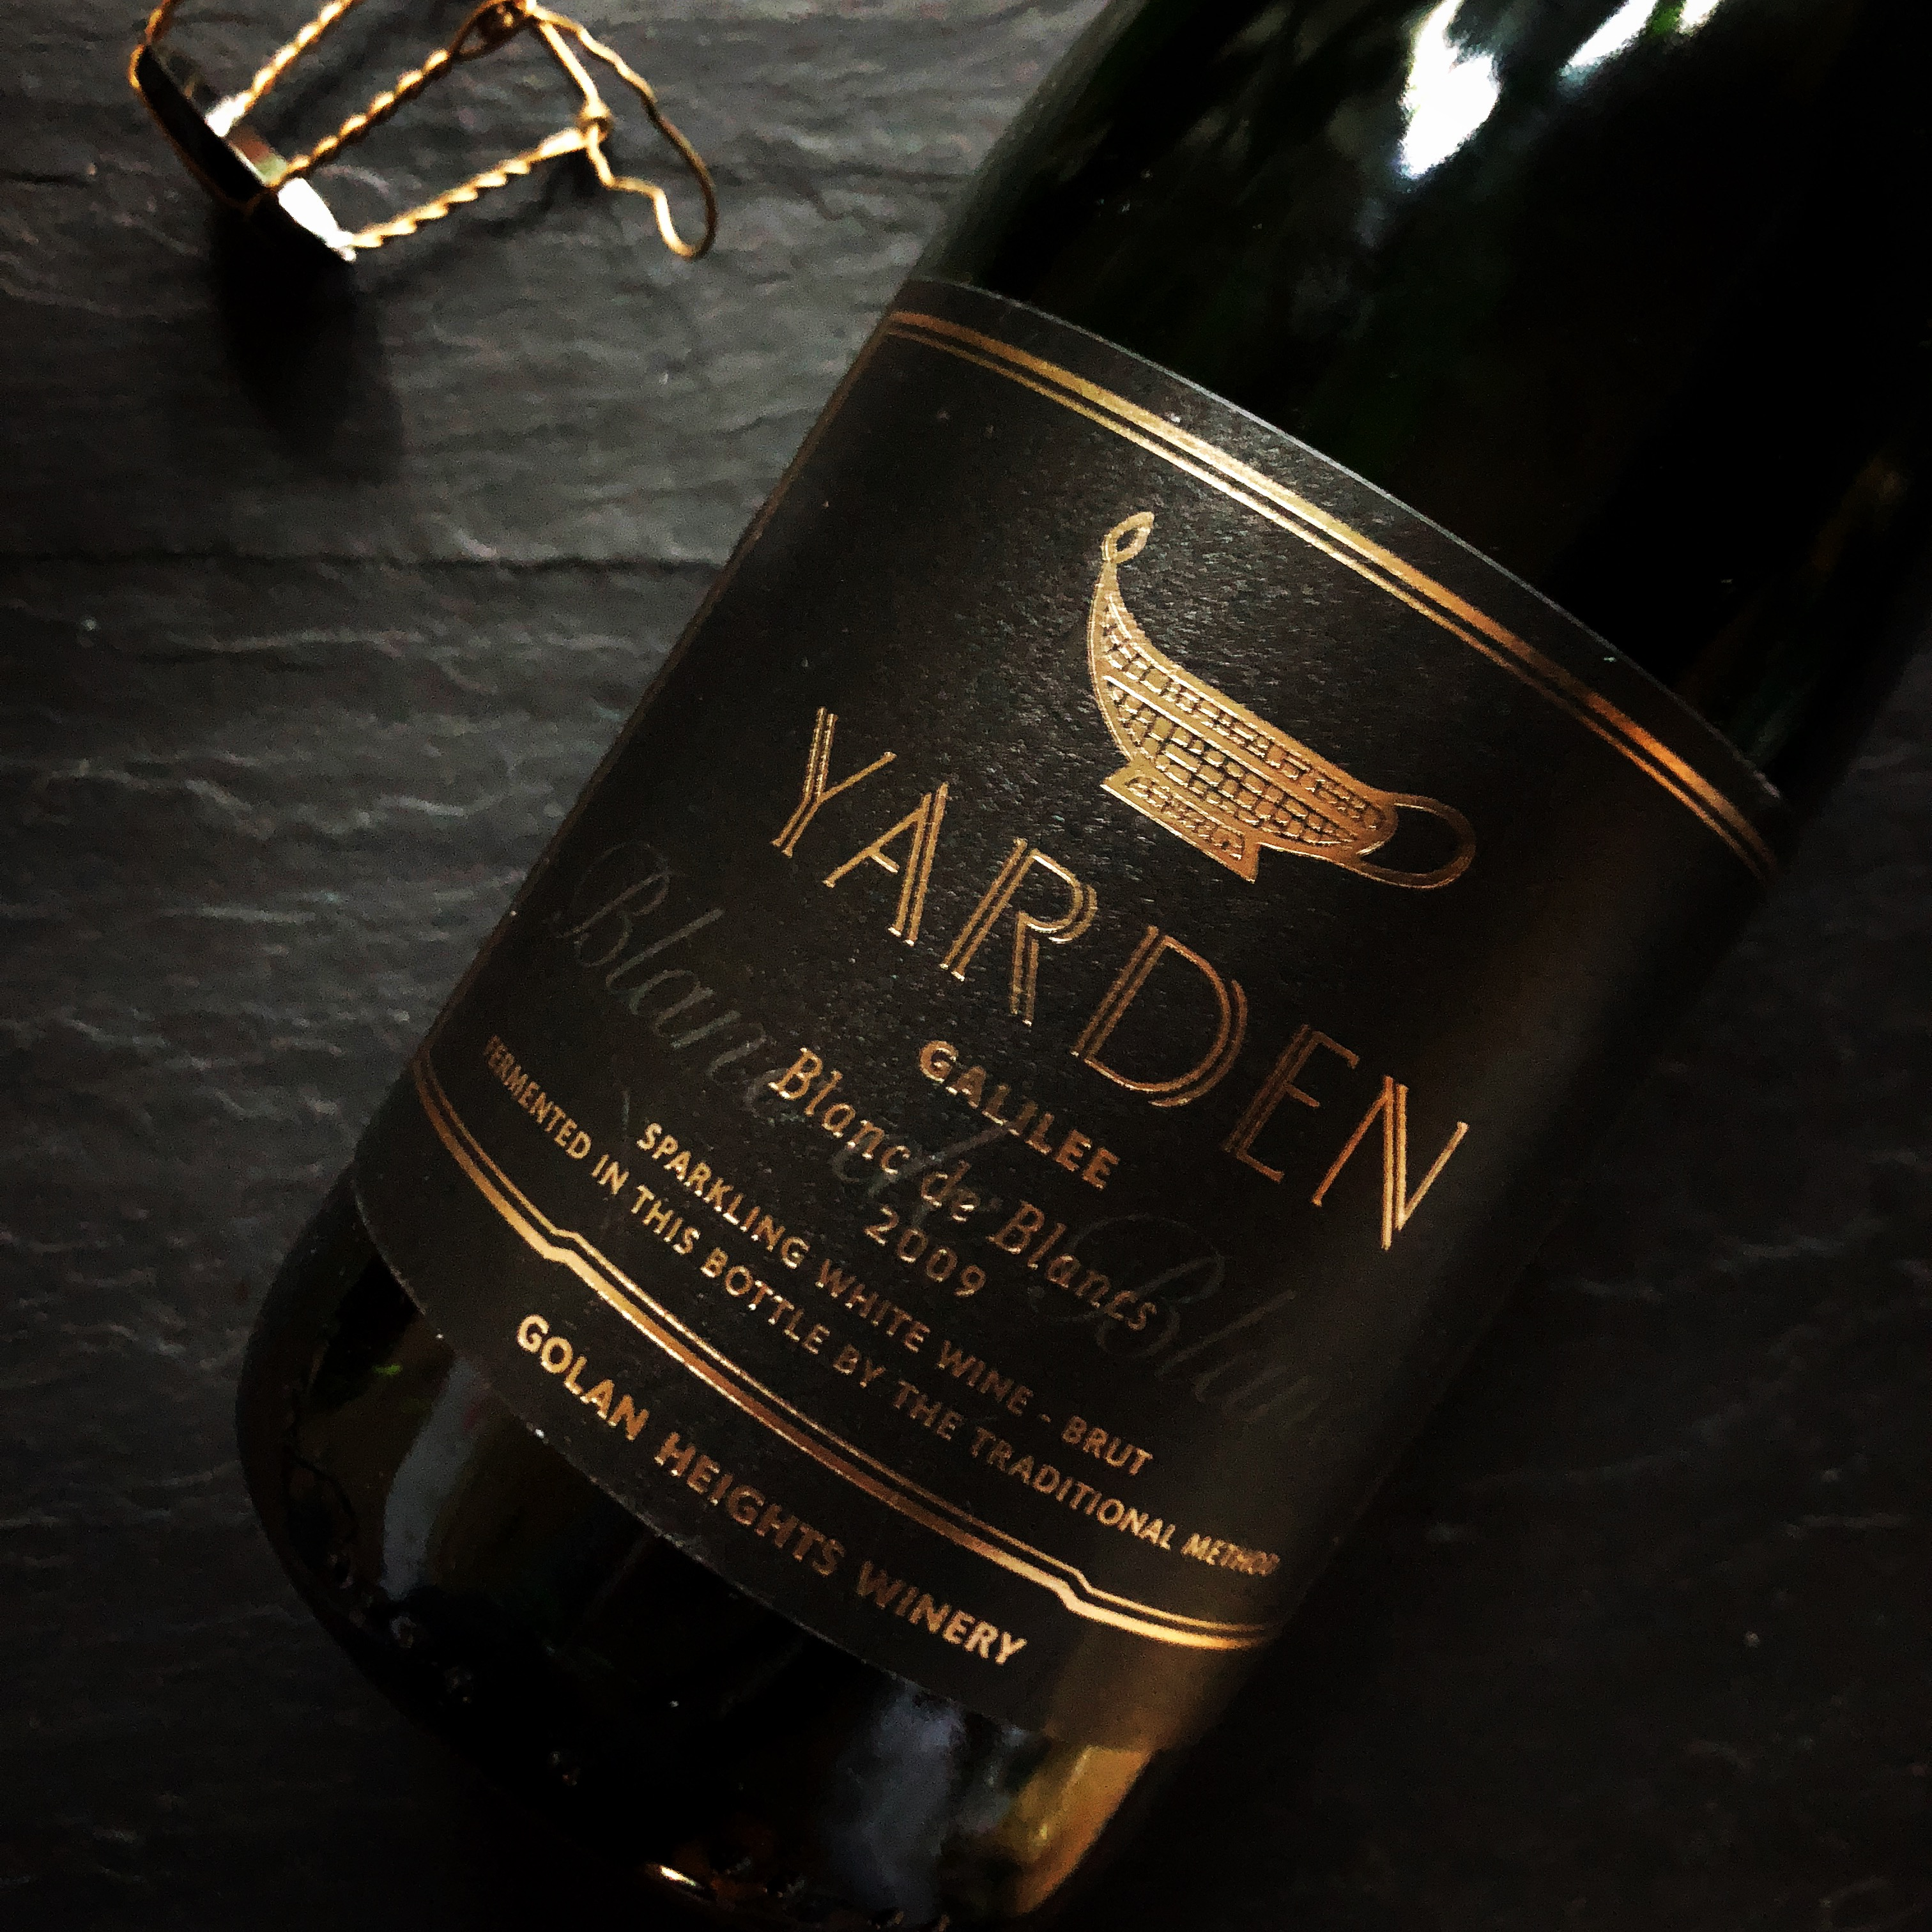 Golan Heights Winery Yarden Blanc de Blancs 2009